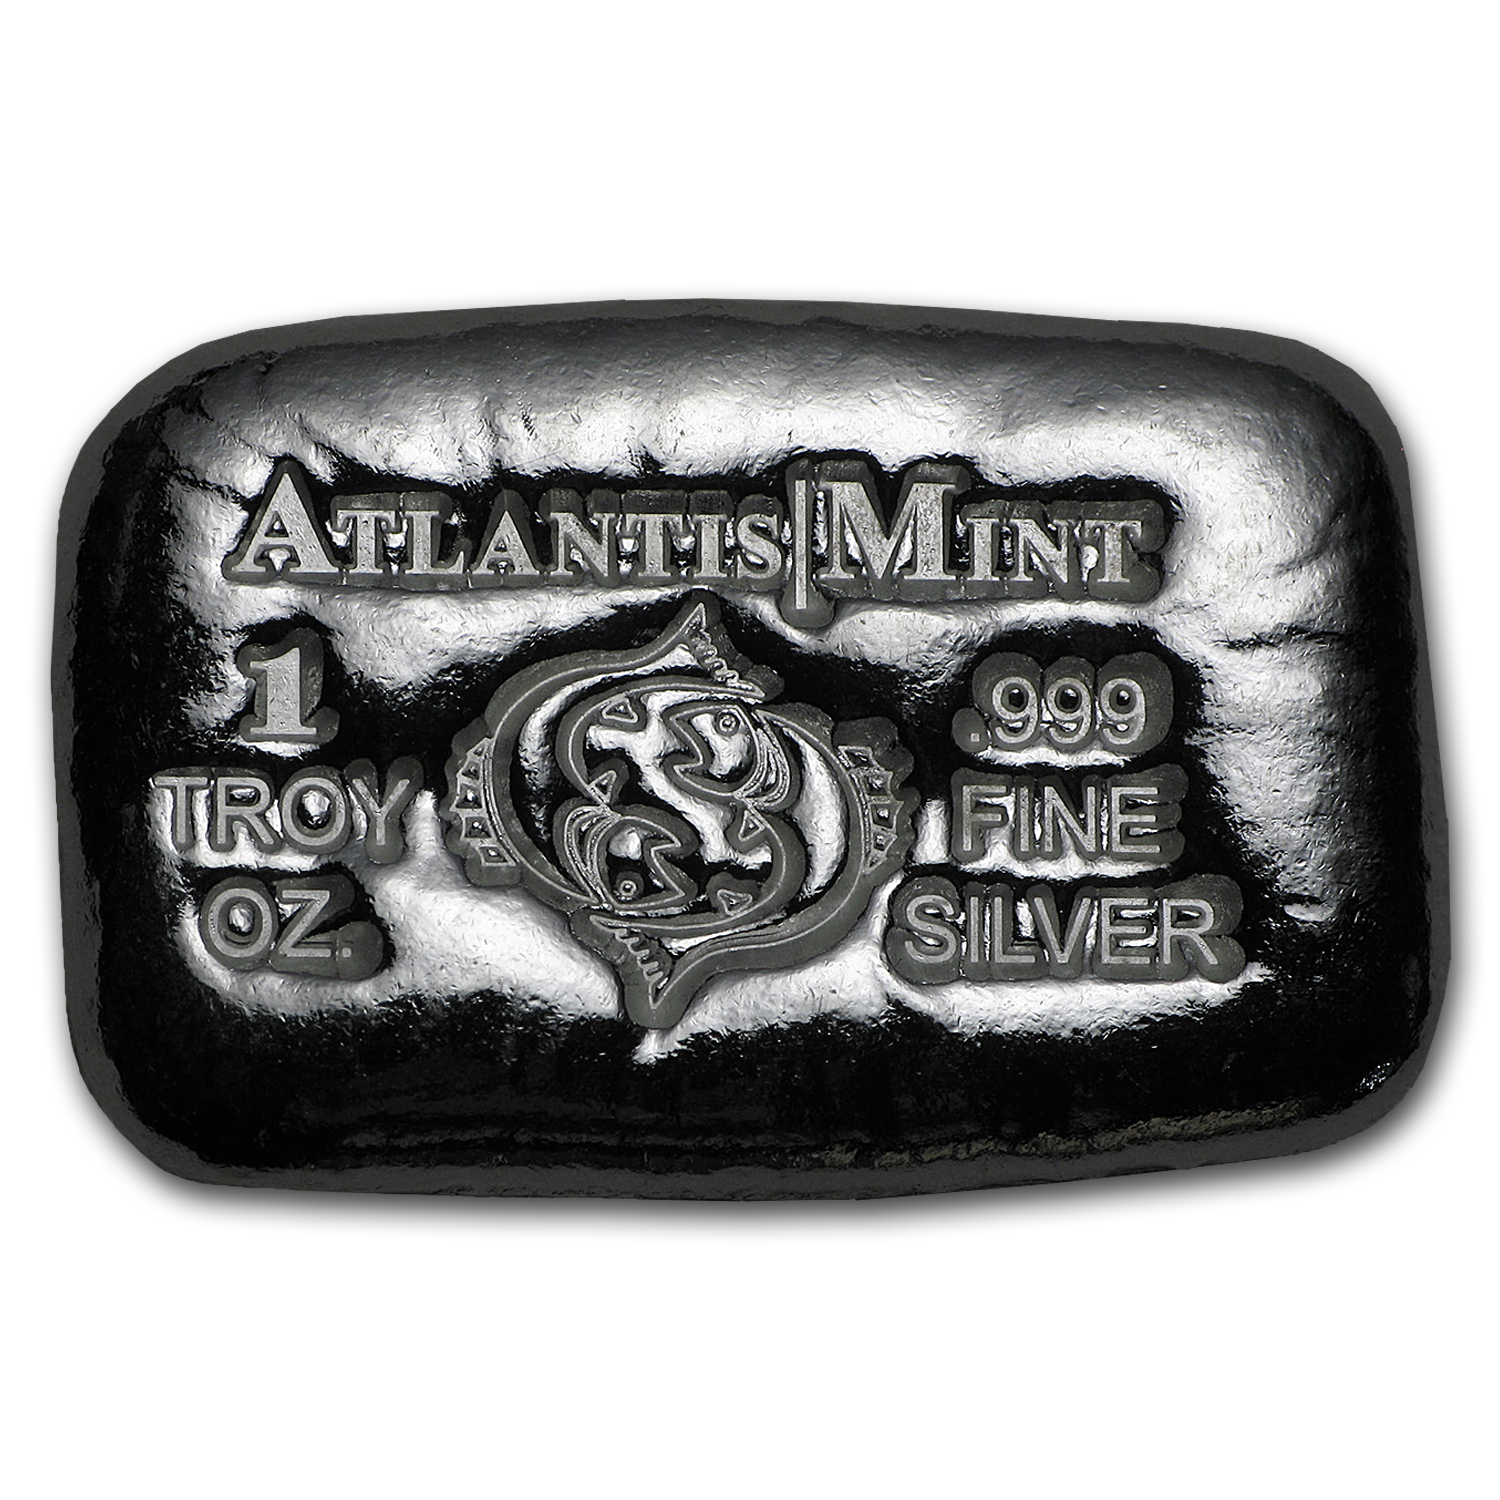 1 oz Silver Bar - Atlantis Mint (Zodiac Series, Pisces)